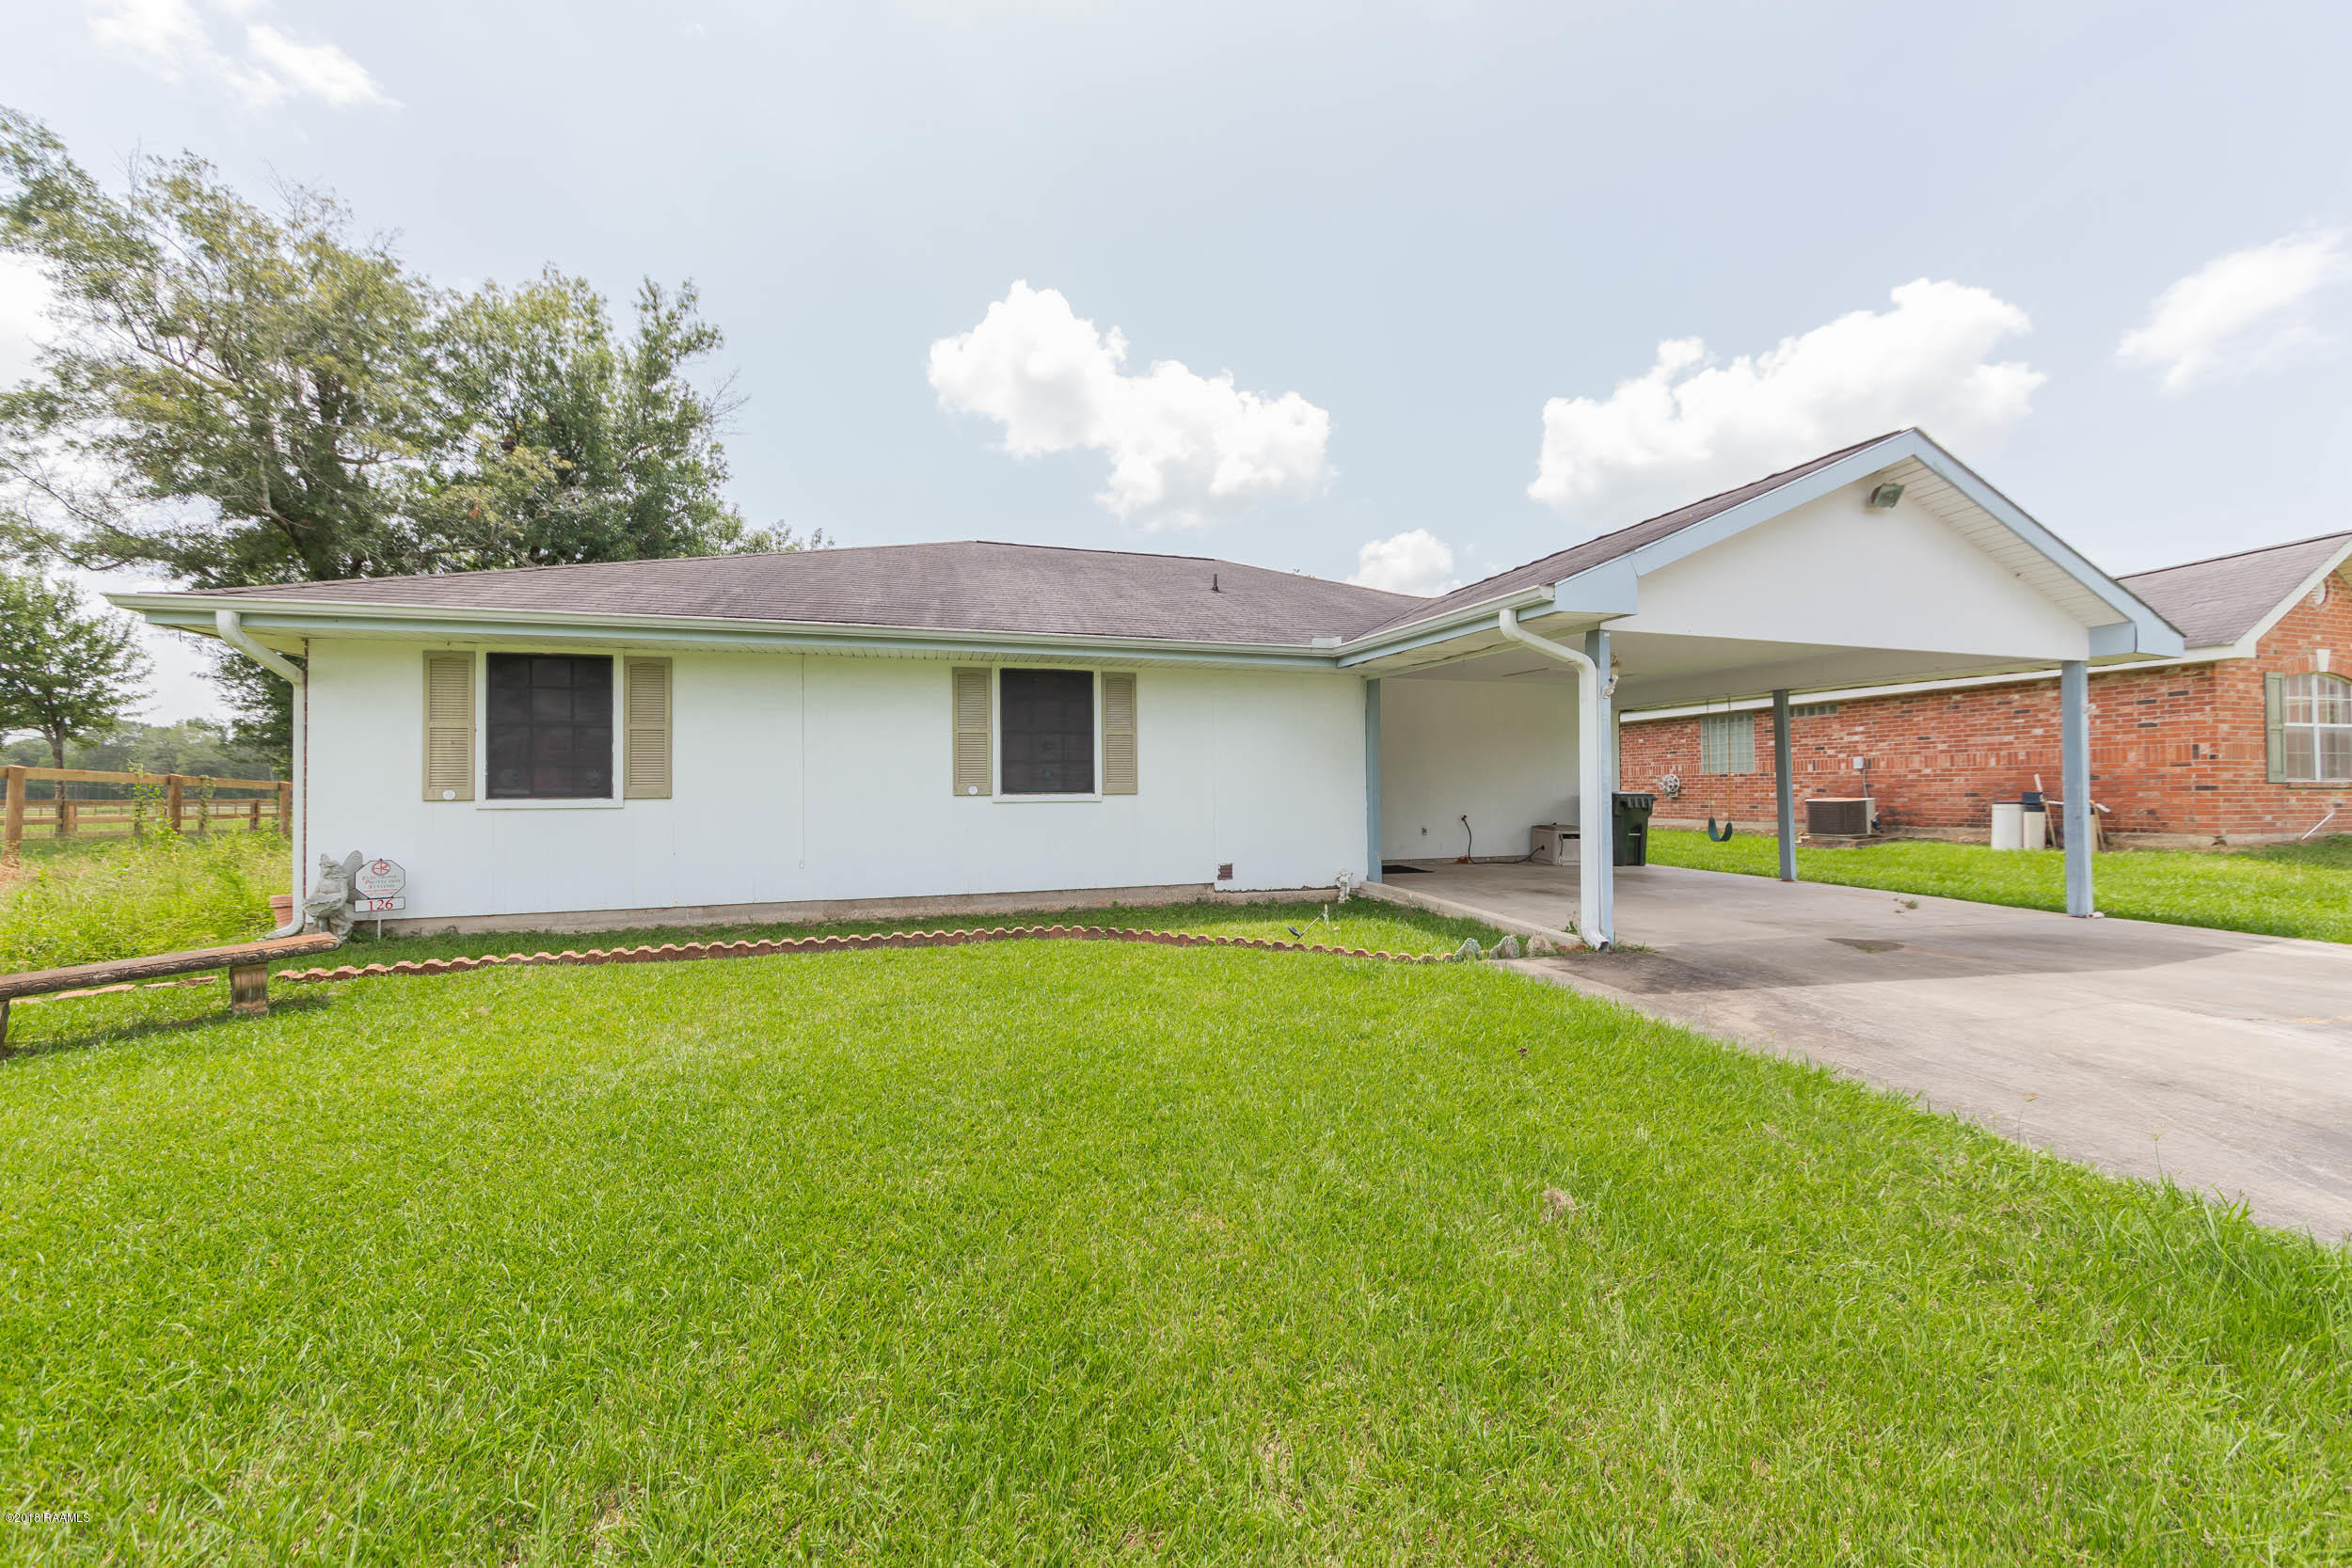 126 Bermuda Circle, Scott, LA 70583 Photo #3